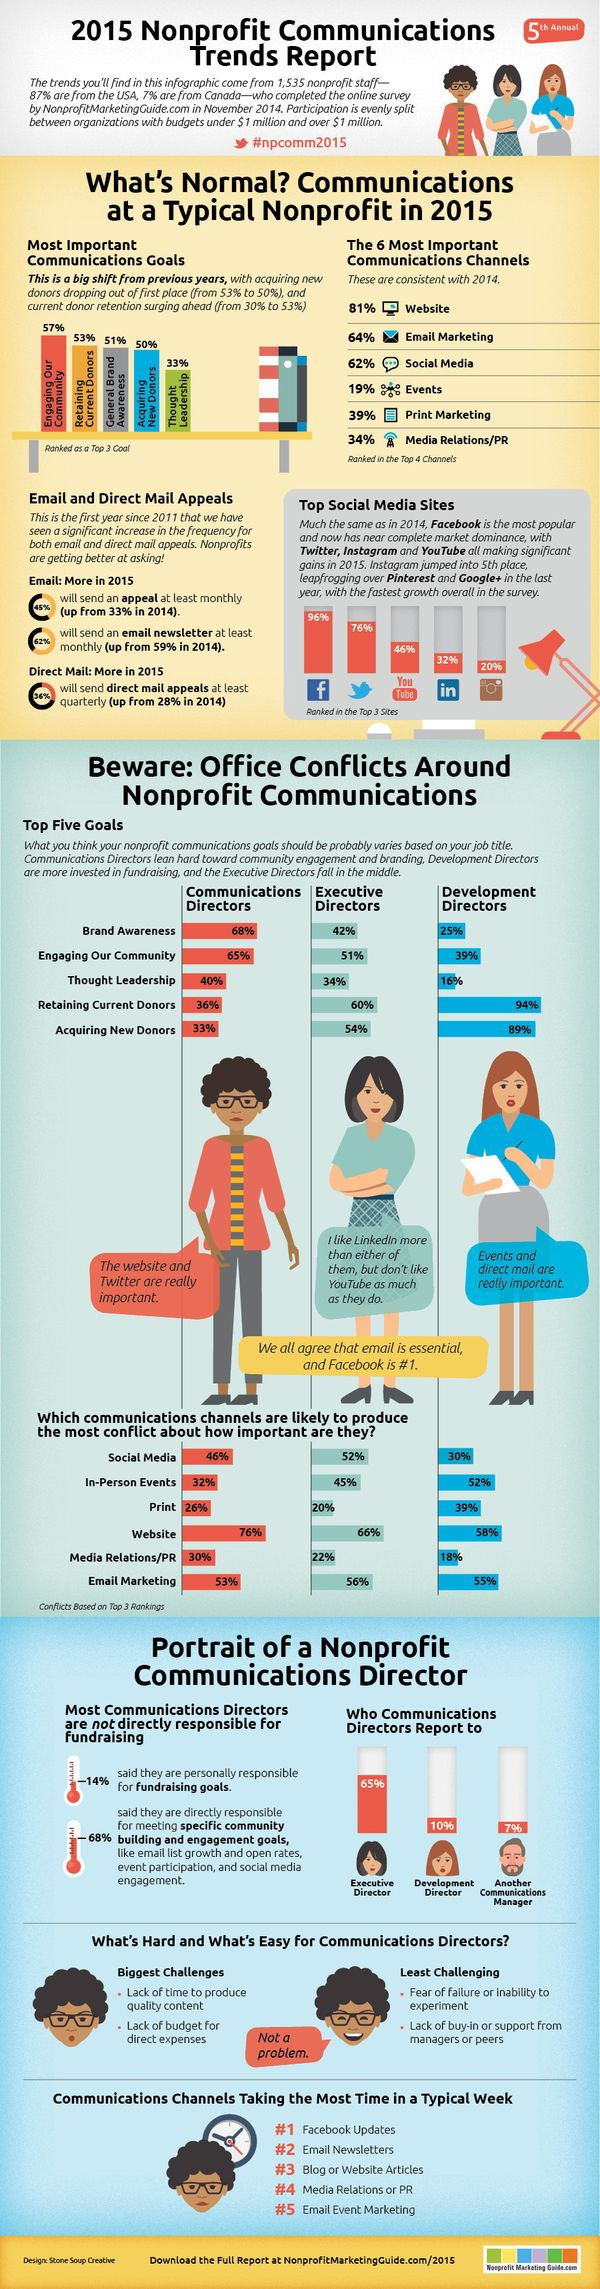 Infographic_nonprofit_communications_trend_report